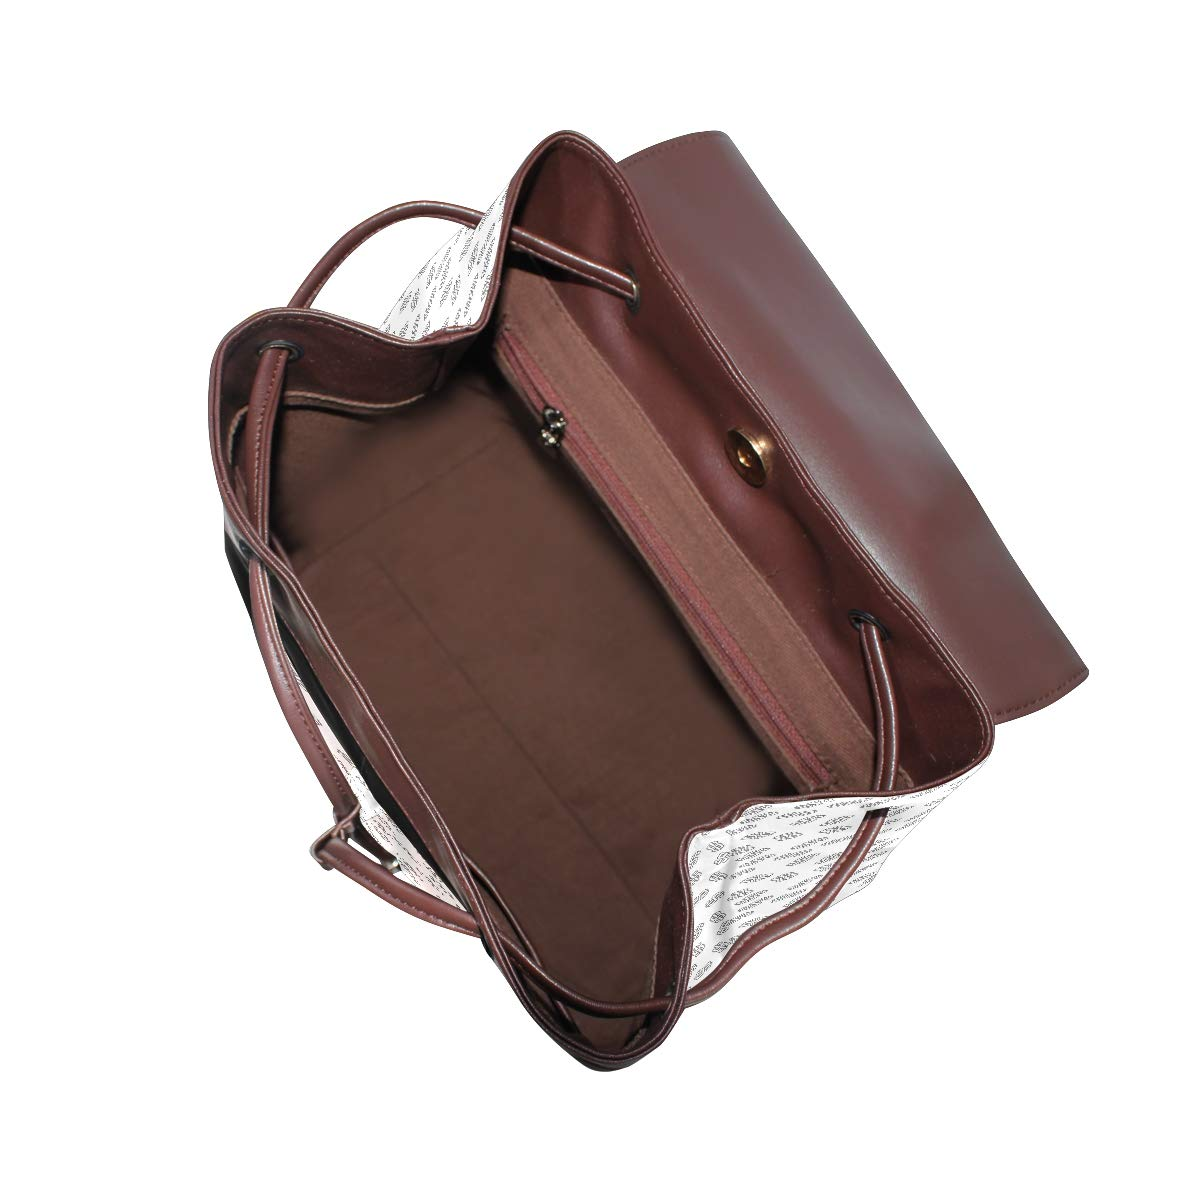 Leather Dollar Abstract Backpack Daypack Bag Women